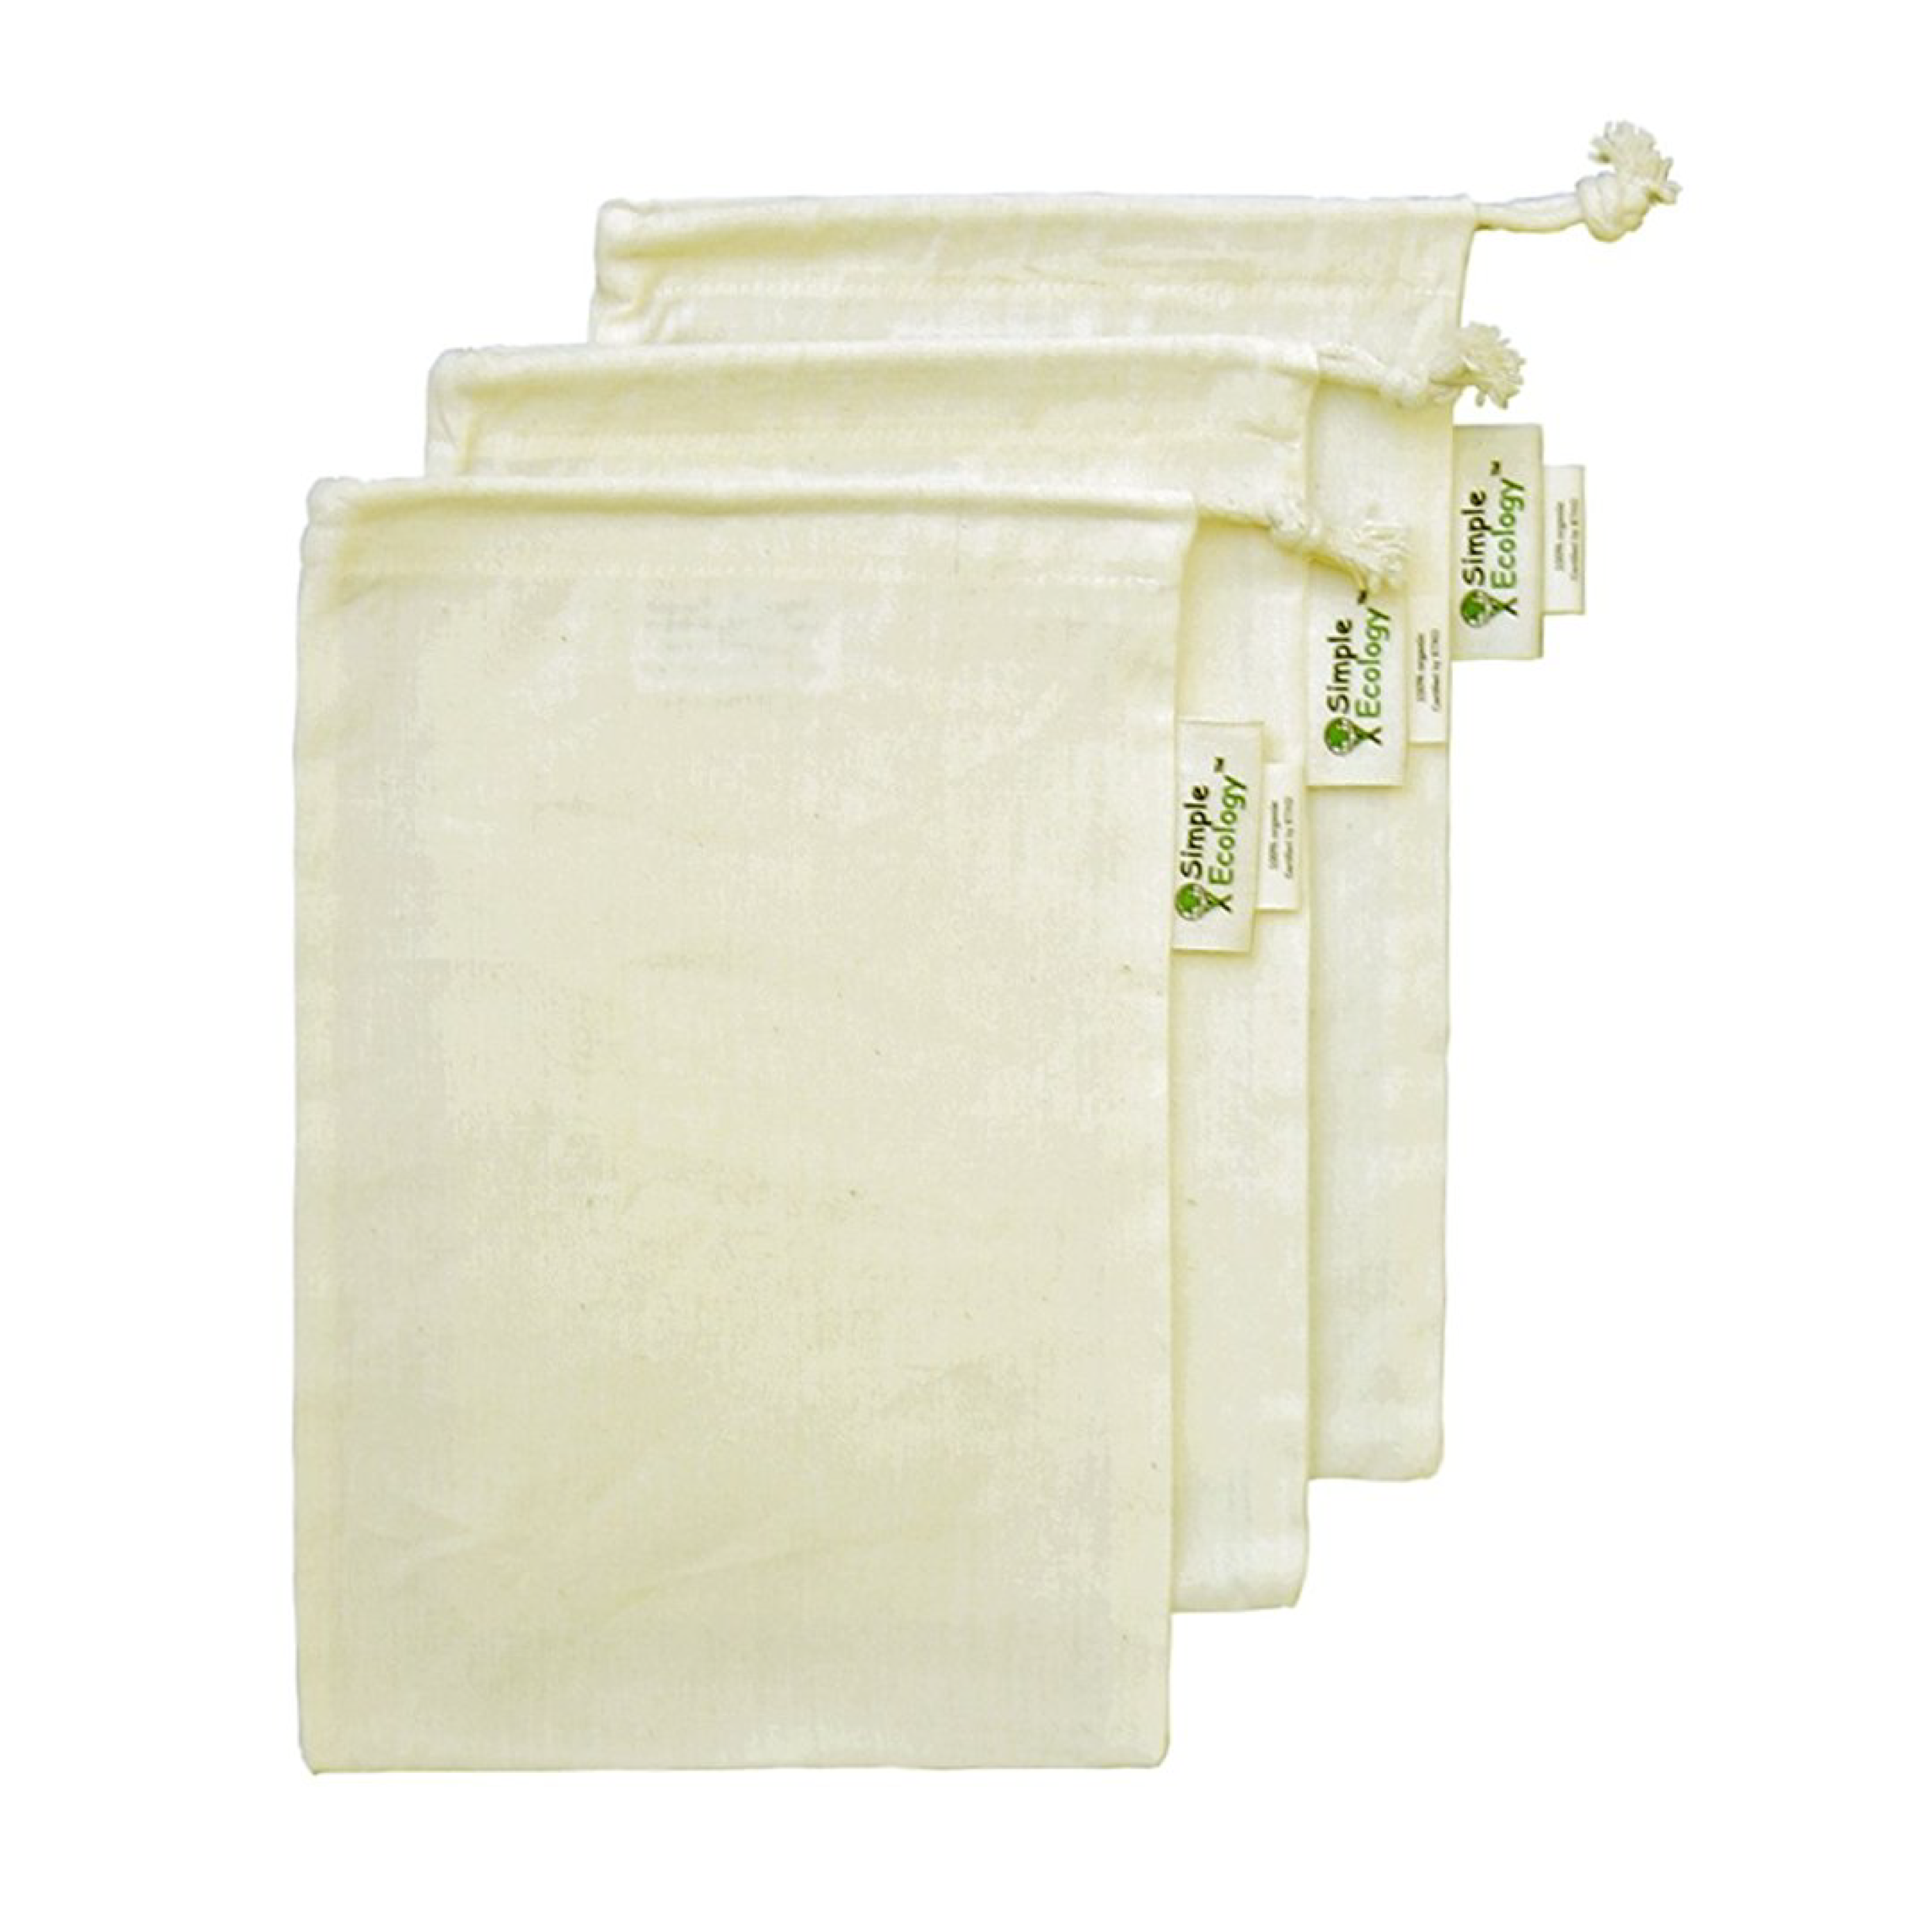 XS reusable cloth shopping bags - perfect for buying spices, grains and small loose produce!